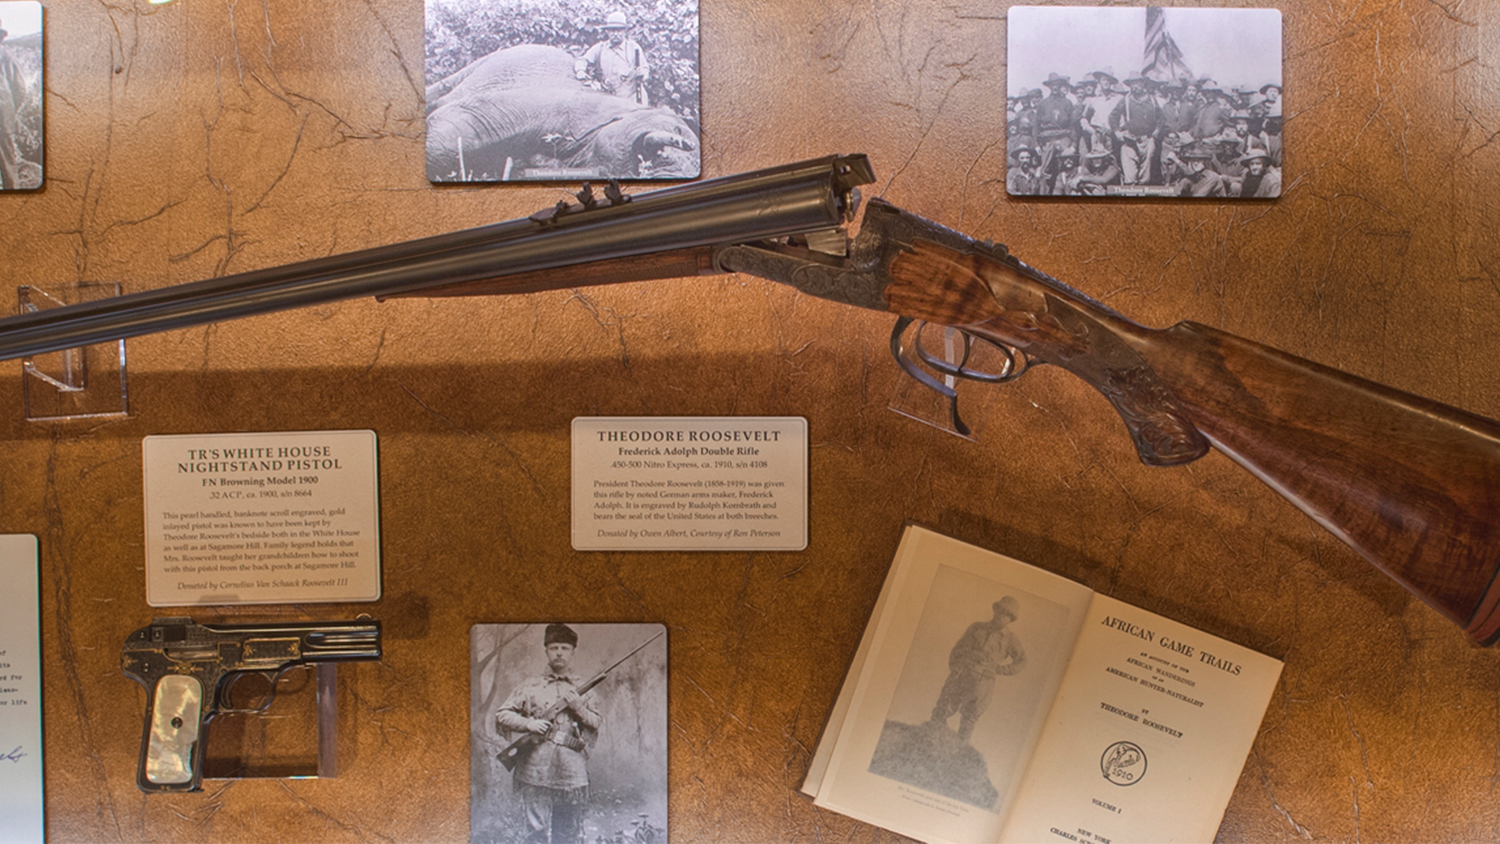 Teddy roosevelt guns to be displayed at nra national - Teddy Roosevelt Guns To Be Displayed At Nra National